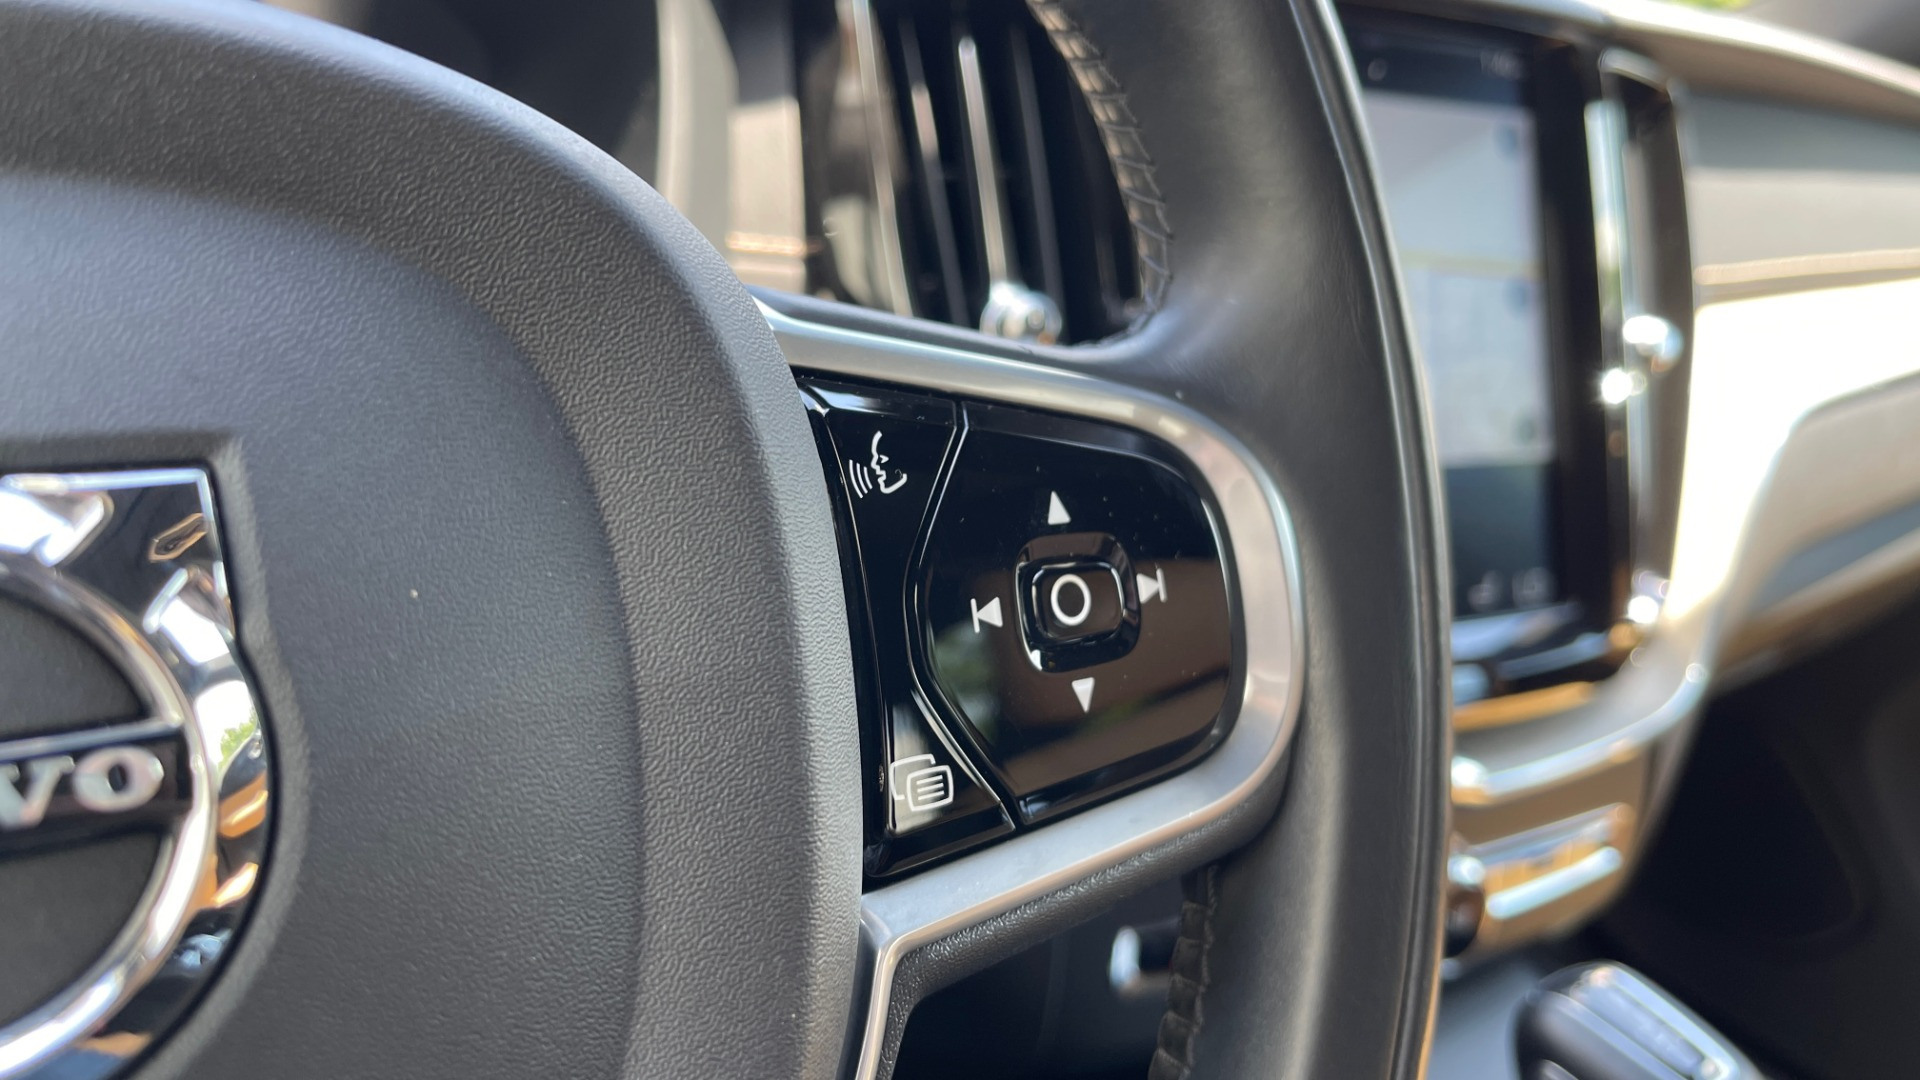 Used 2018 Volvo XC60 INSCRIPTION 2.0L TURBO SUV / AWD / NAV / SUNROOF / REARVIEW for sale $38,795 at Formula Imports in Charlotte NC 28227 44